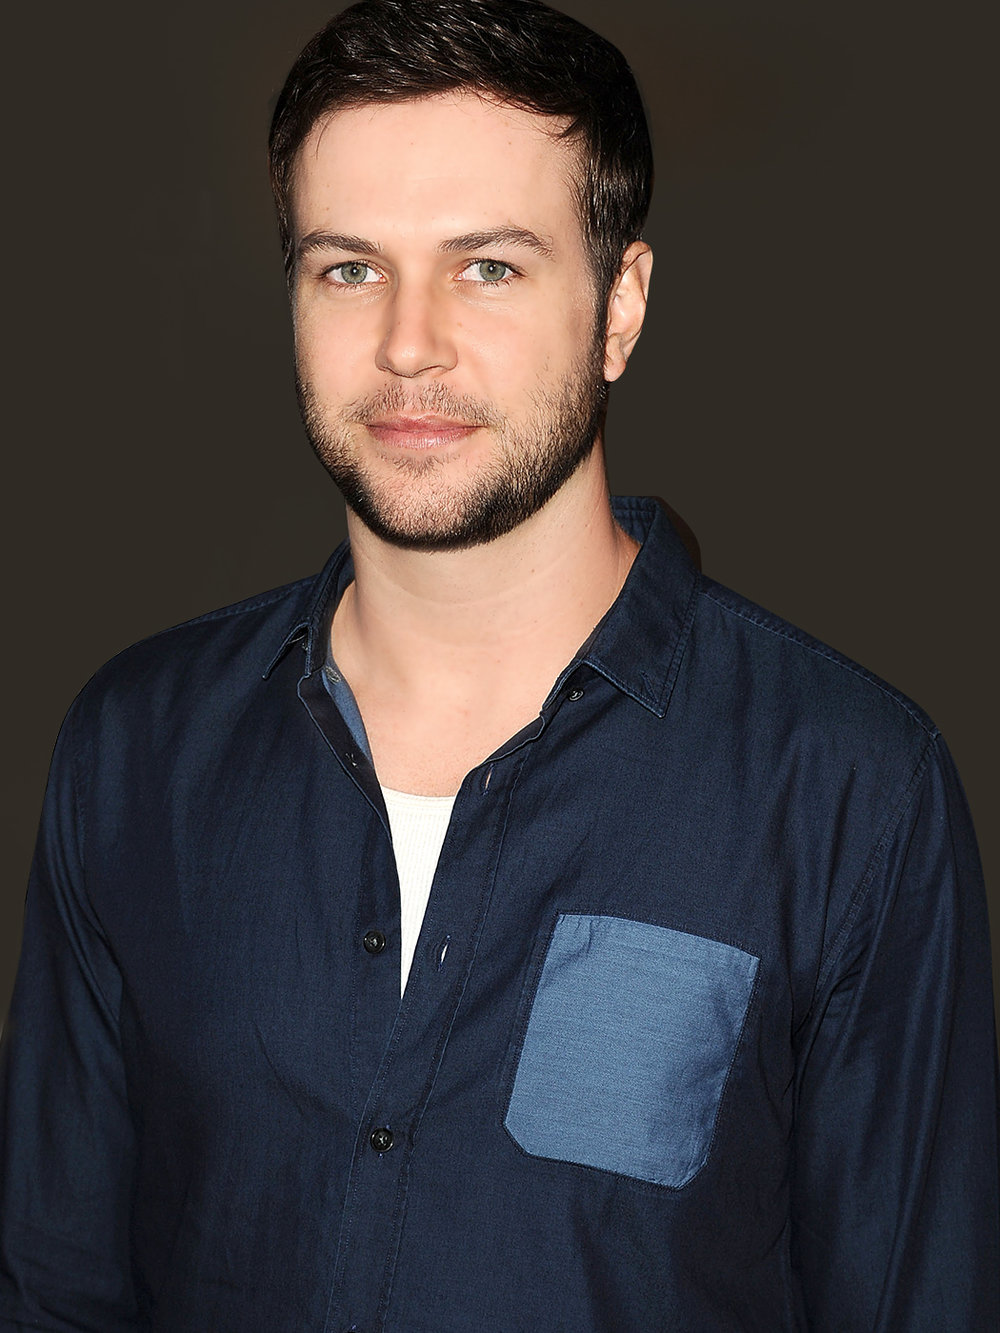 Taran Killam Headshot.jpg